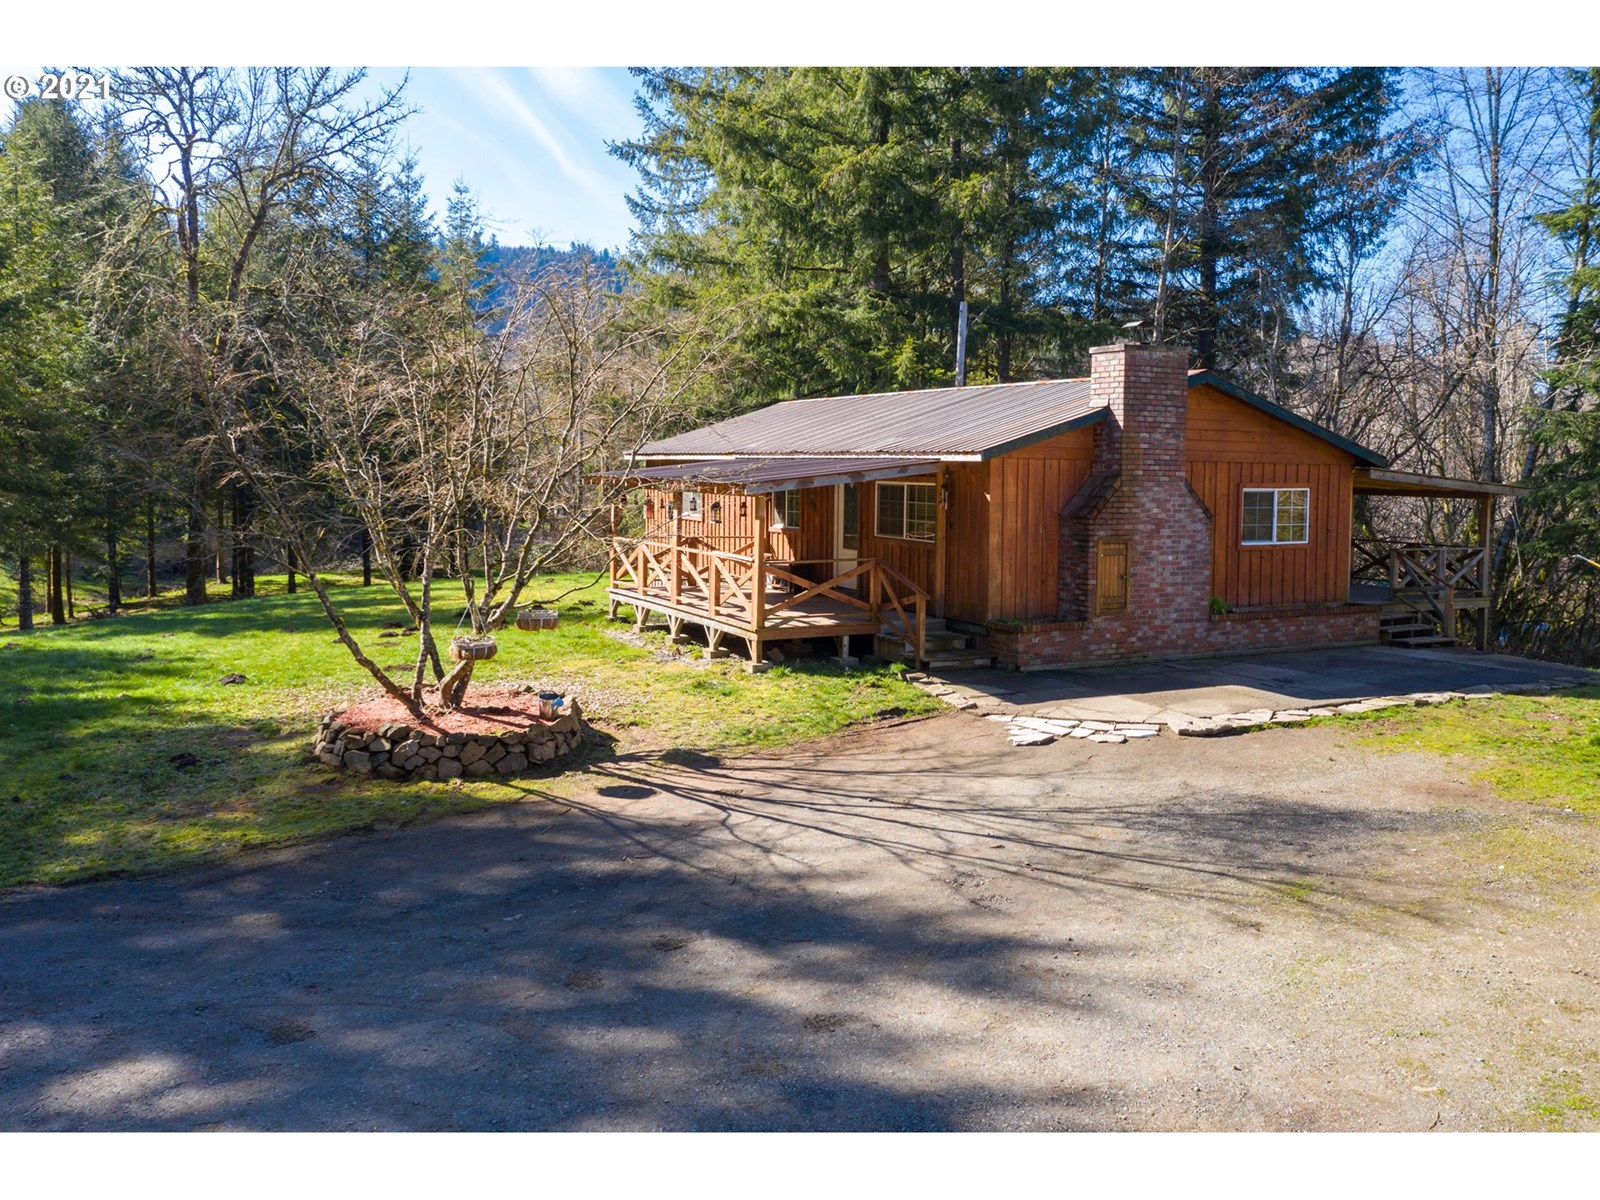 Amazing 5.74 acre ranch home with 960 sq/ft shop